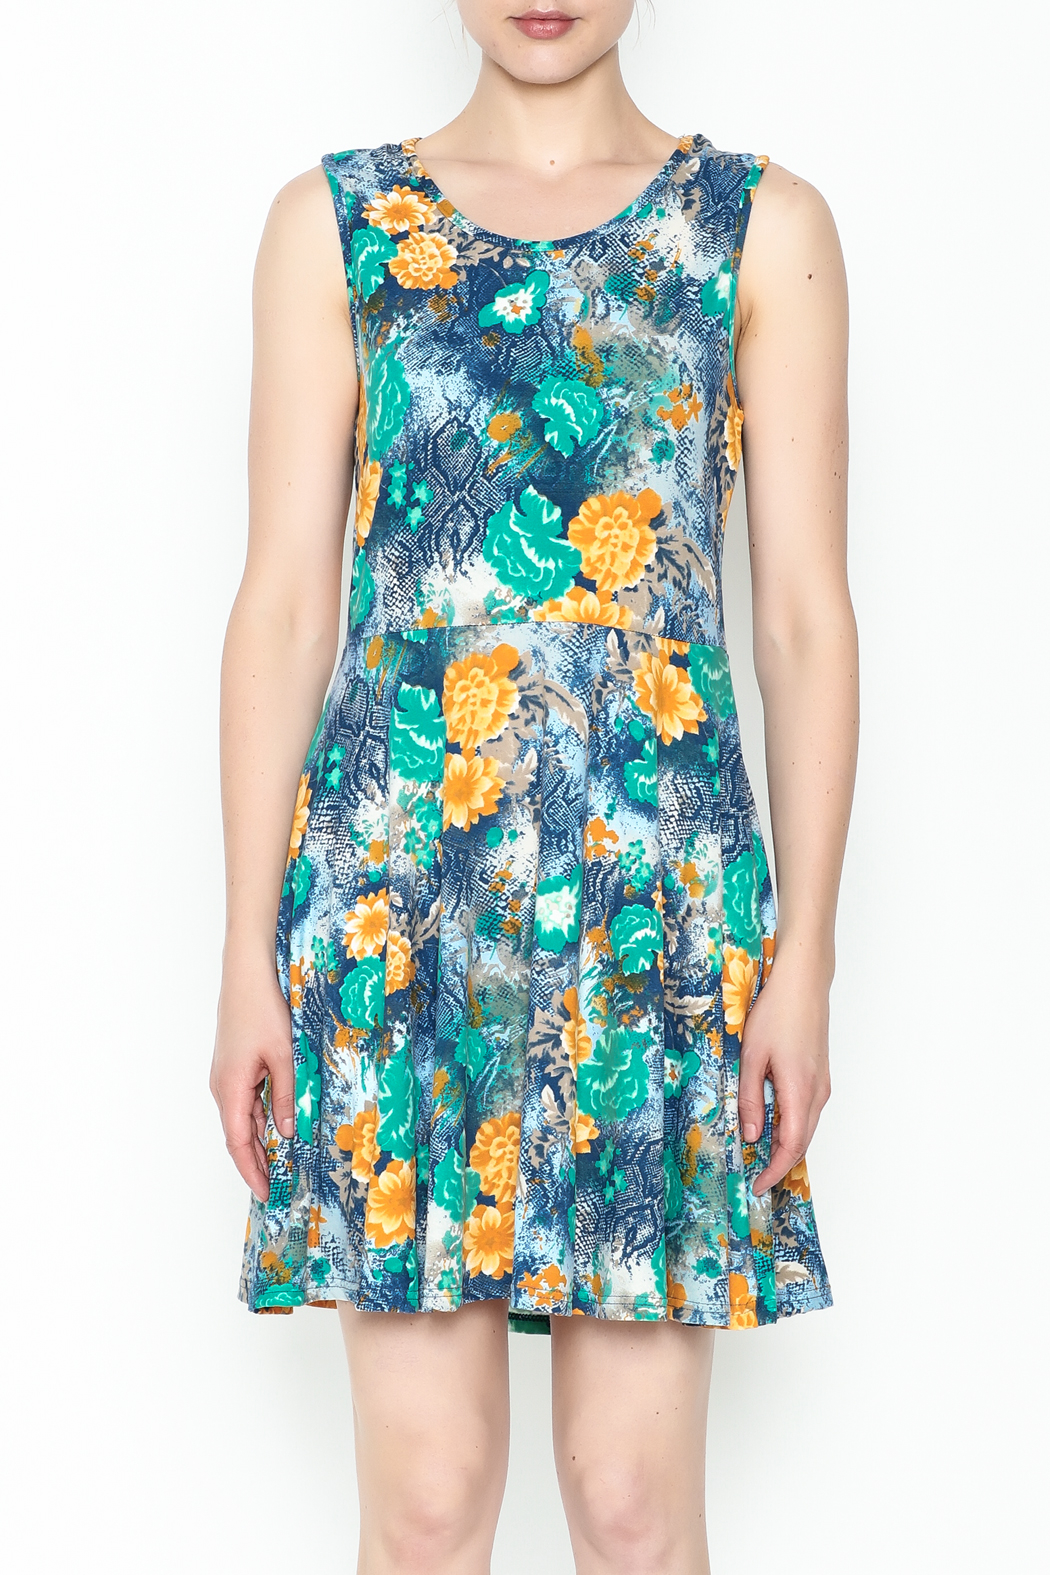 Jon & Anna Green Floral Dress - Front Full Image